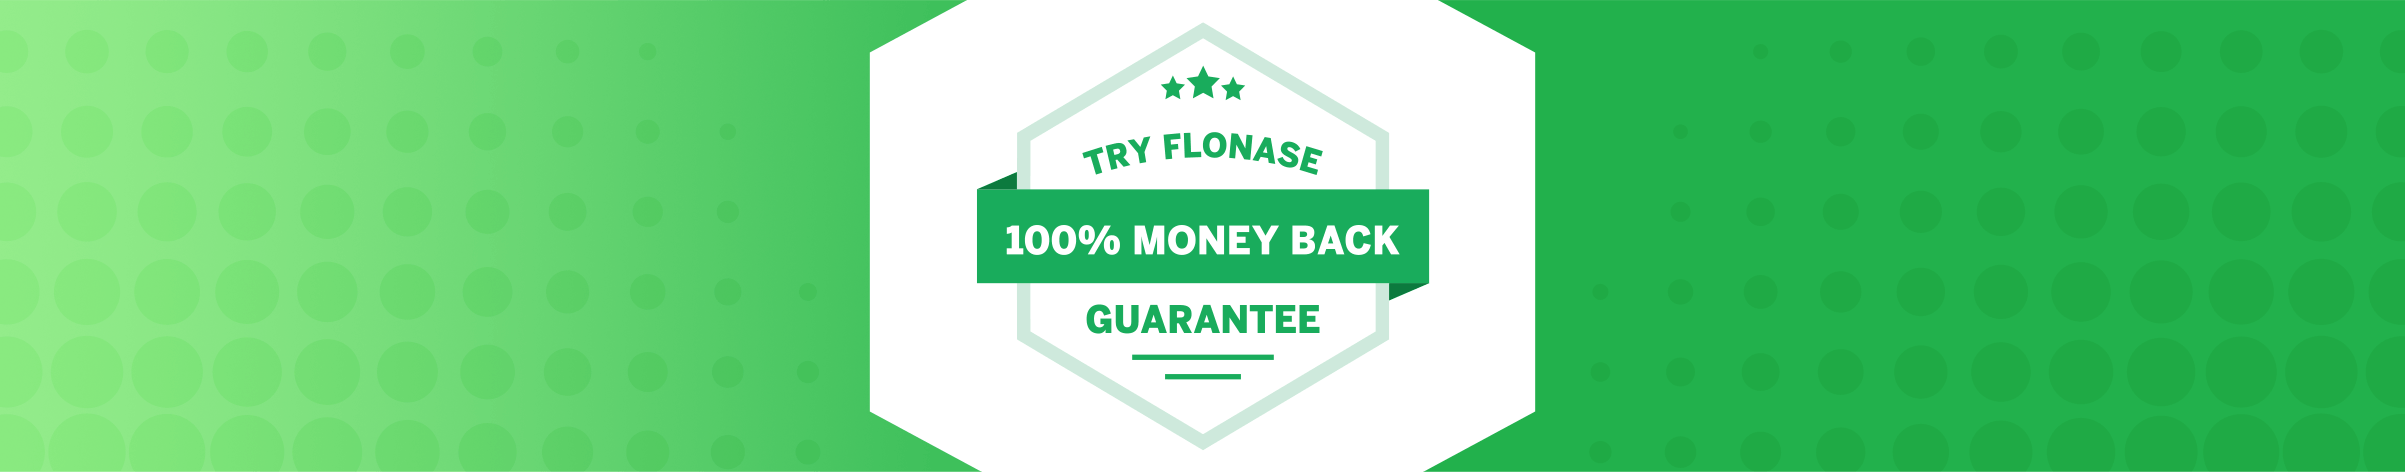 Flonase Money-Back Guarantee